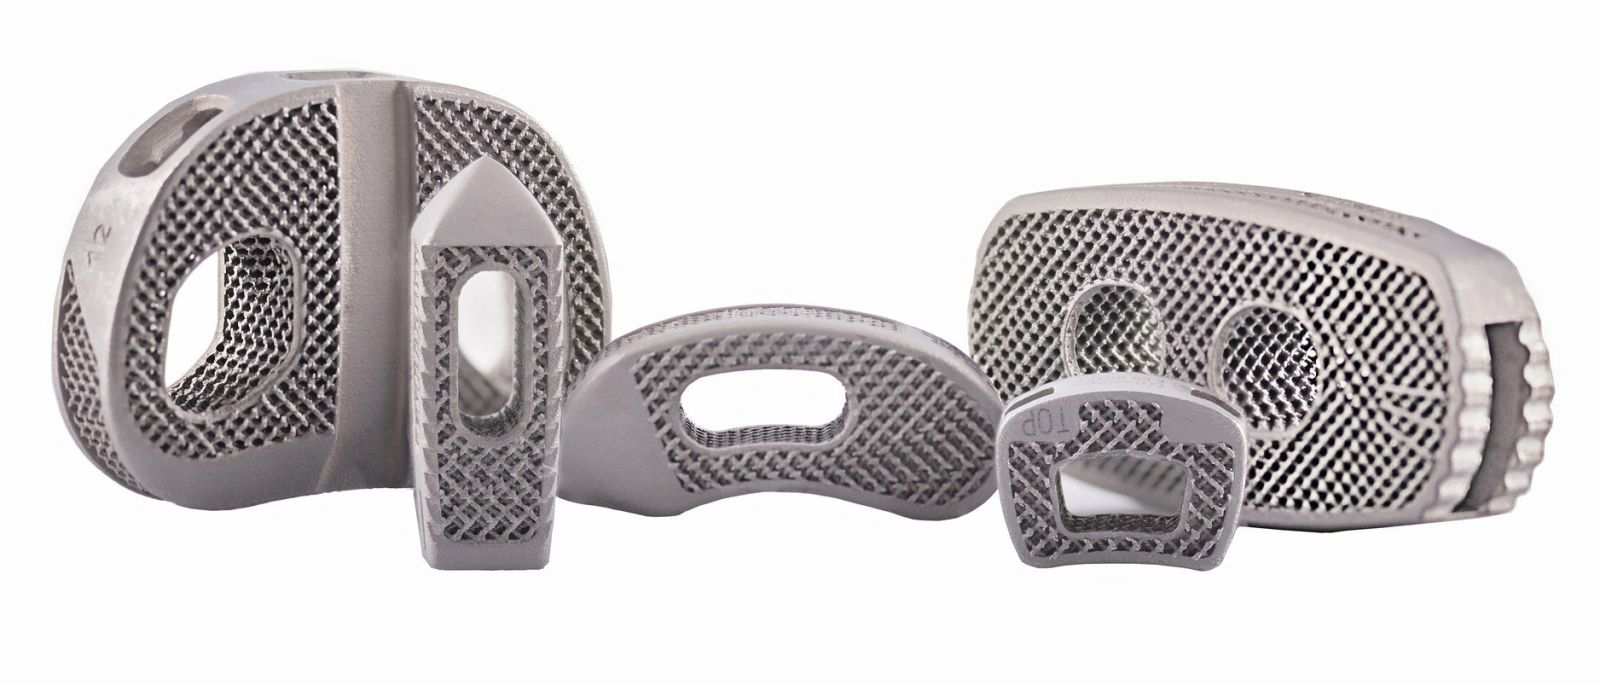 DePuy Synthes CONDUIT Interbody Devices - ORTHOWORLD